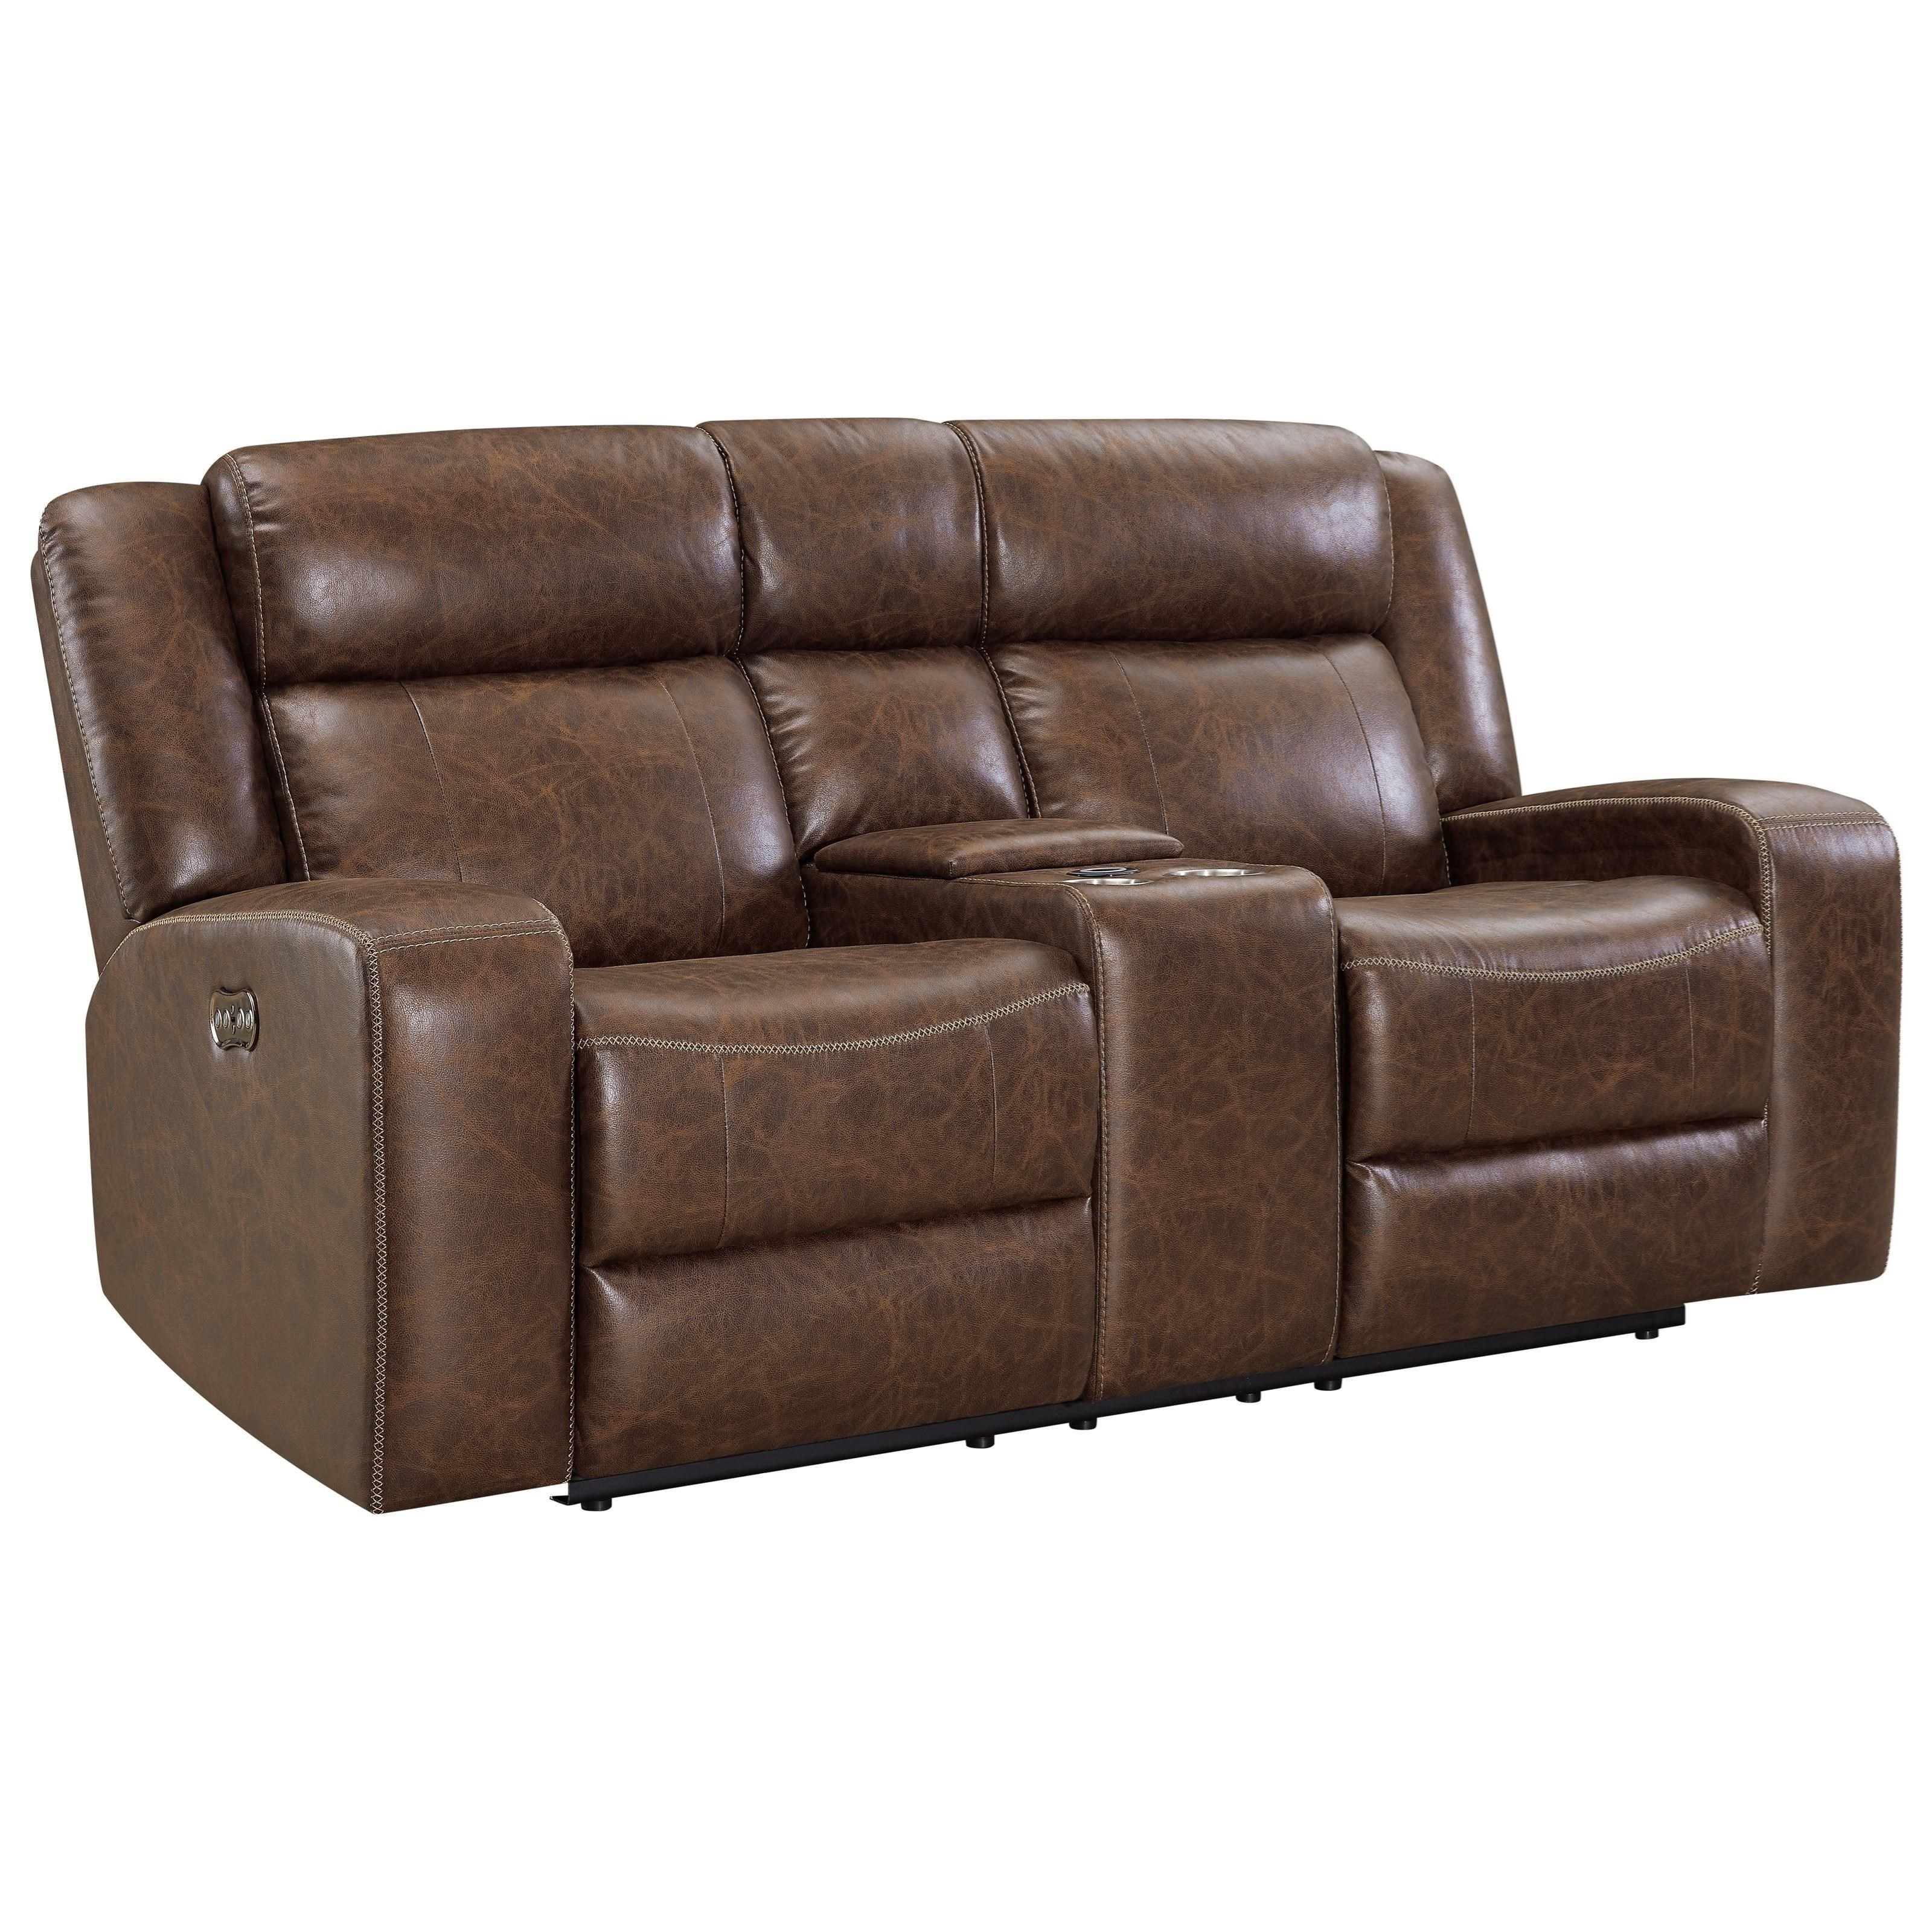 Atticus Power Reclining Console Loveseat by New Classic at Rife's Home Furniture